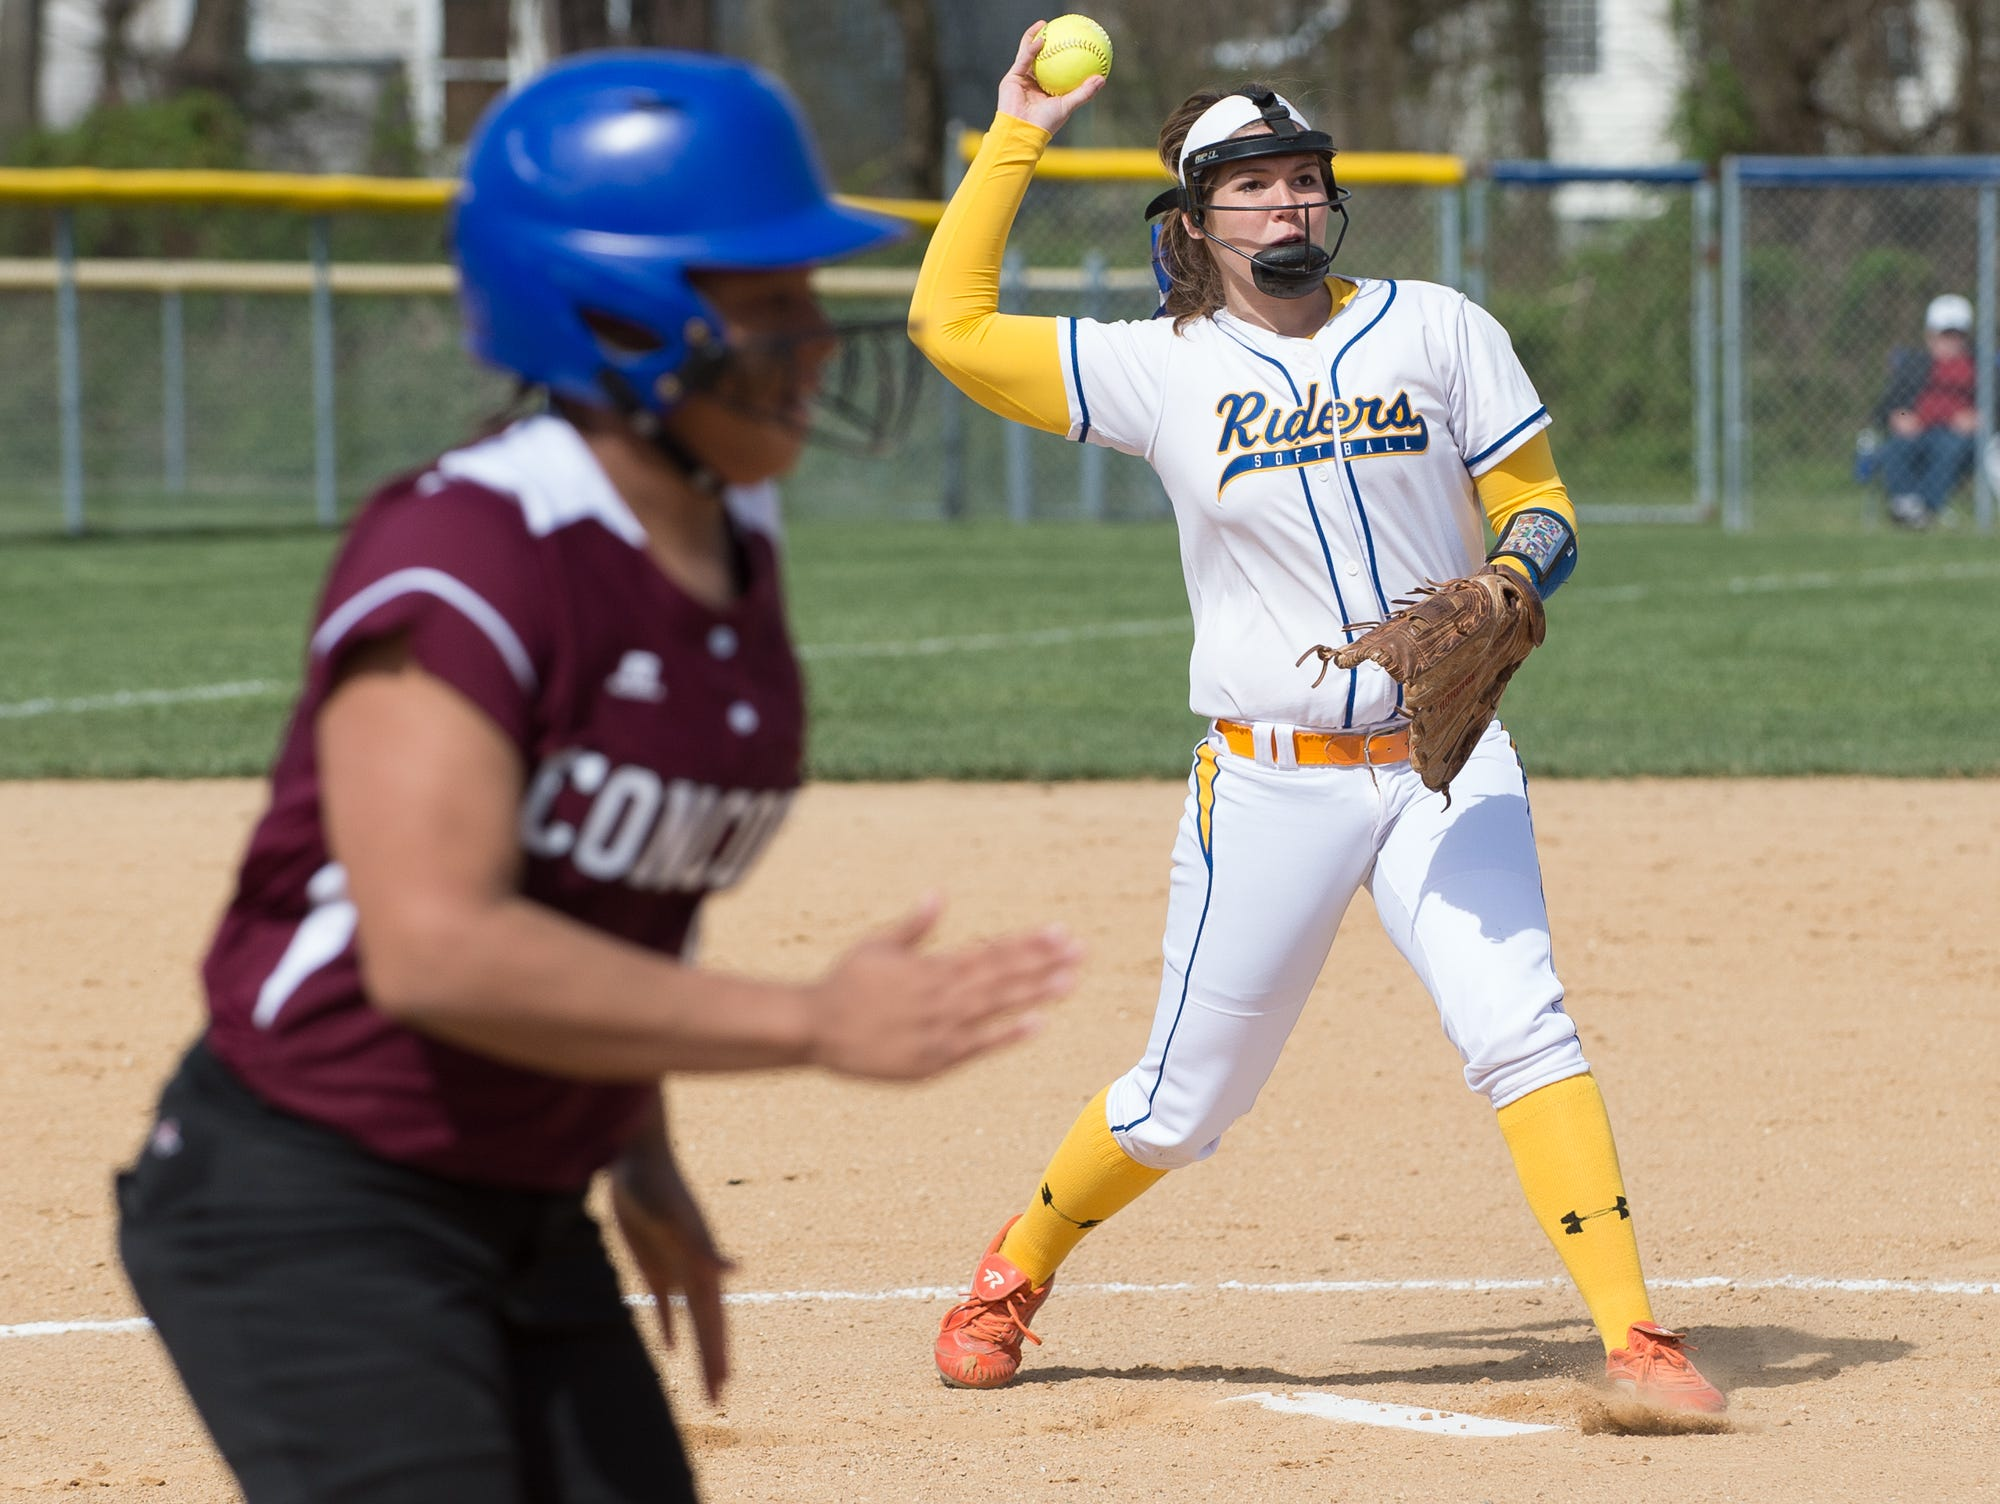 Caesar Rodney's pitcher Alyssa Ball (9) throws out a Concord runner at first base in the first inning.